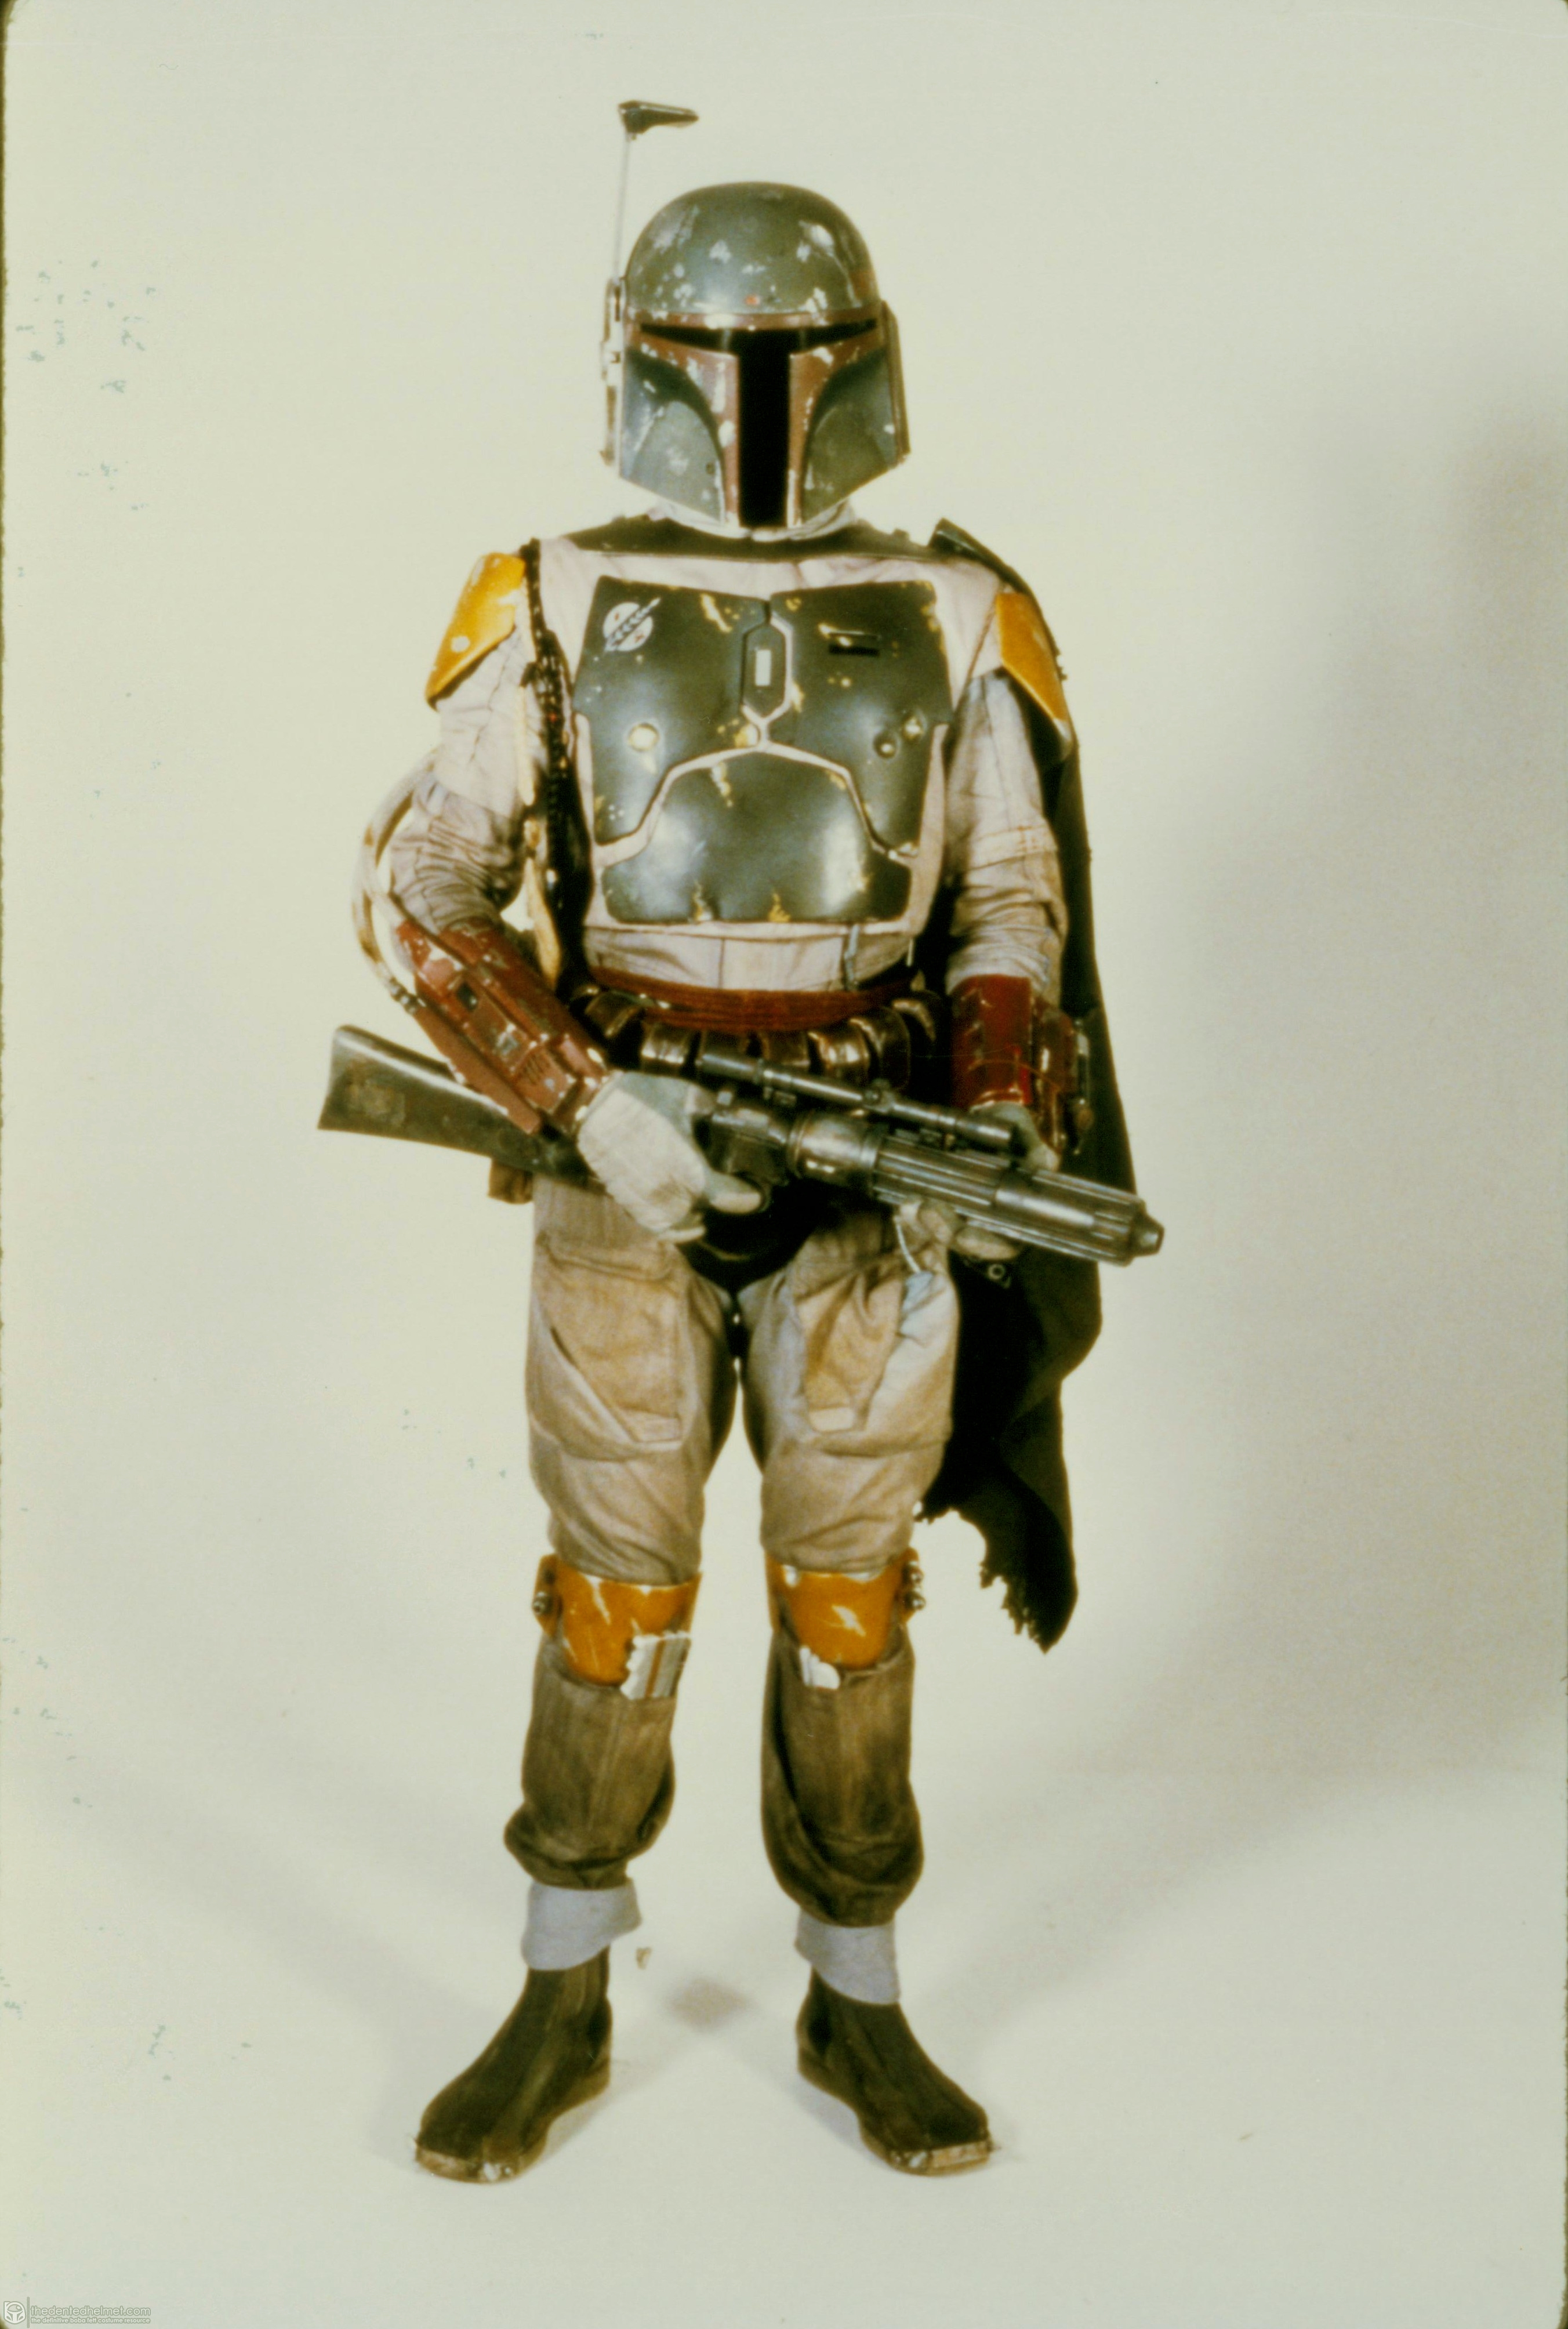 Boba-Fett-Costume-Return-of-the-Jedi-02a.jpg